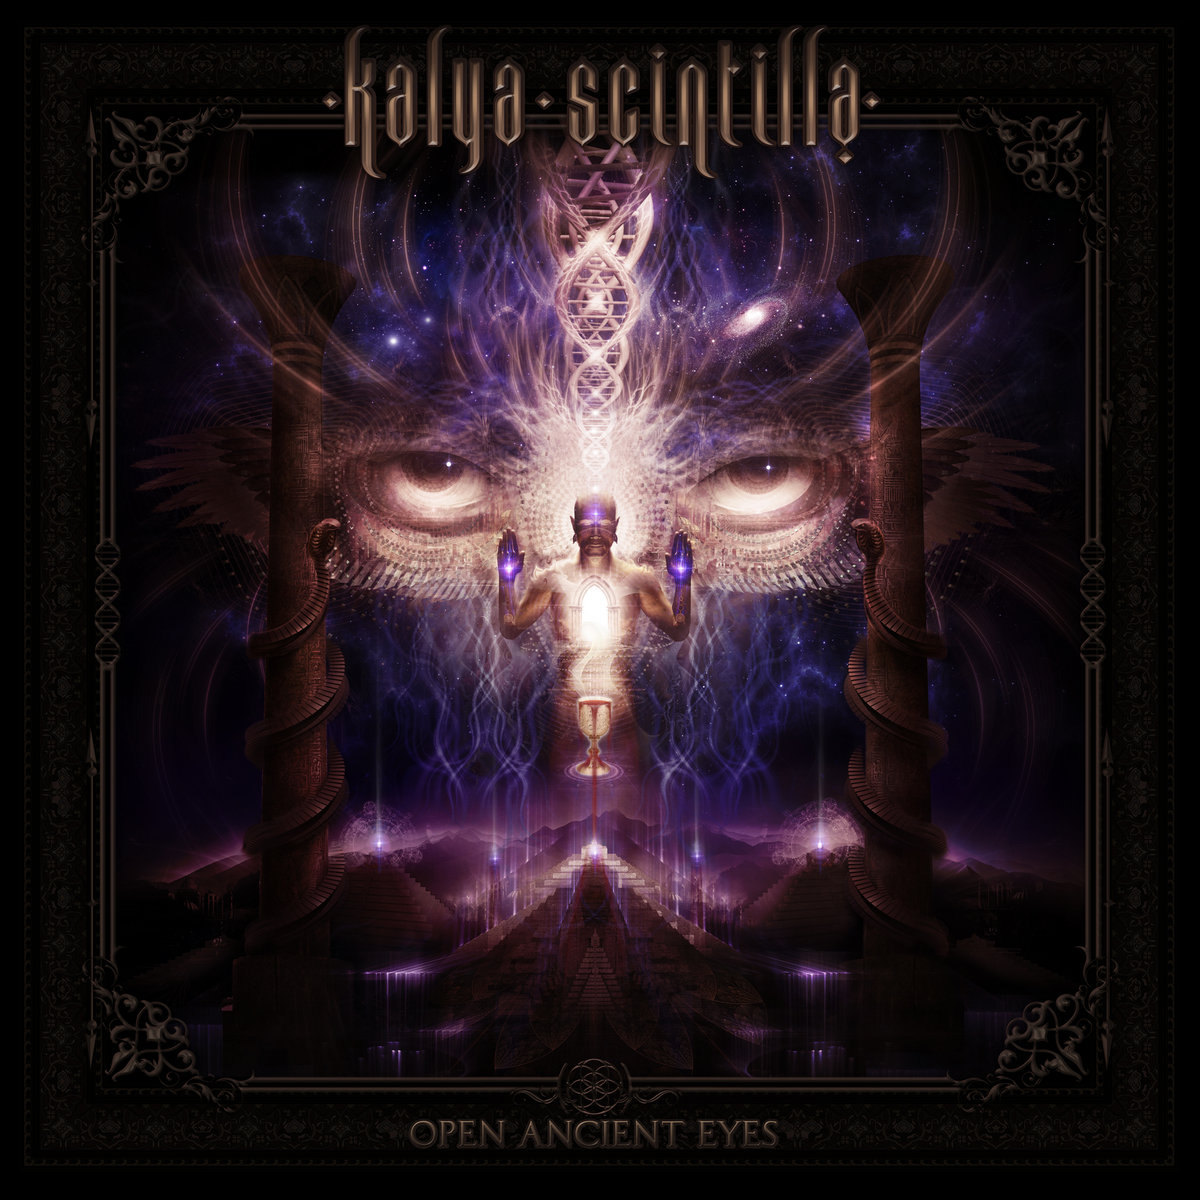 Kalya Scintilla - Ver La Luz (Digital Only) @ 'Open Ancient Eyes' album (432hz, electronic)